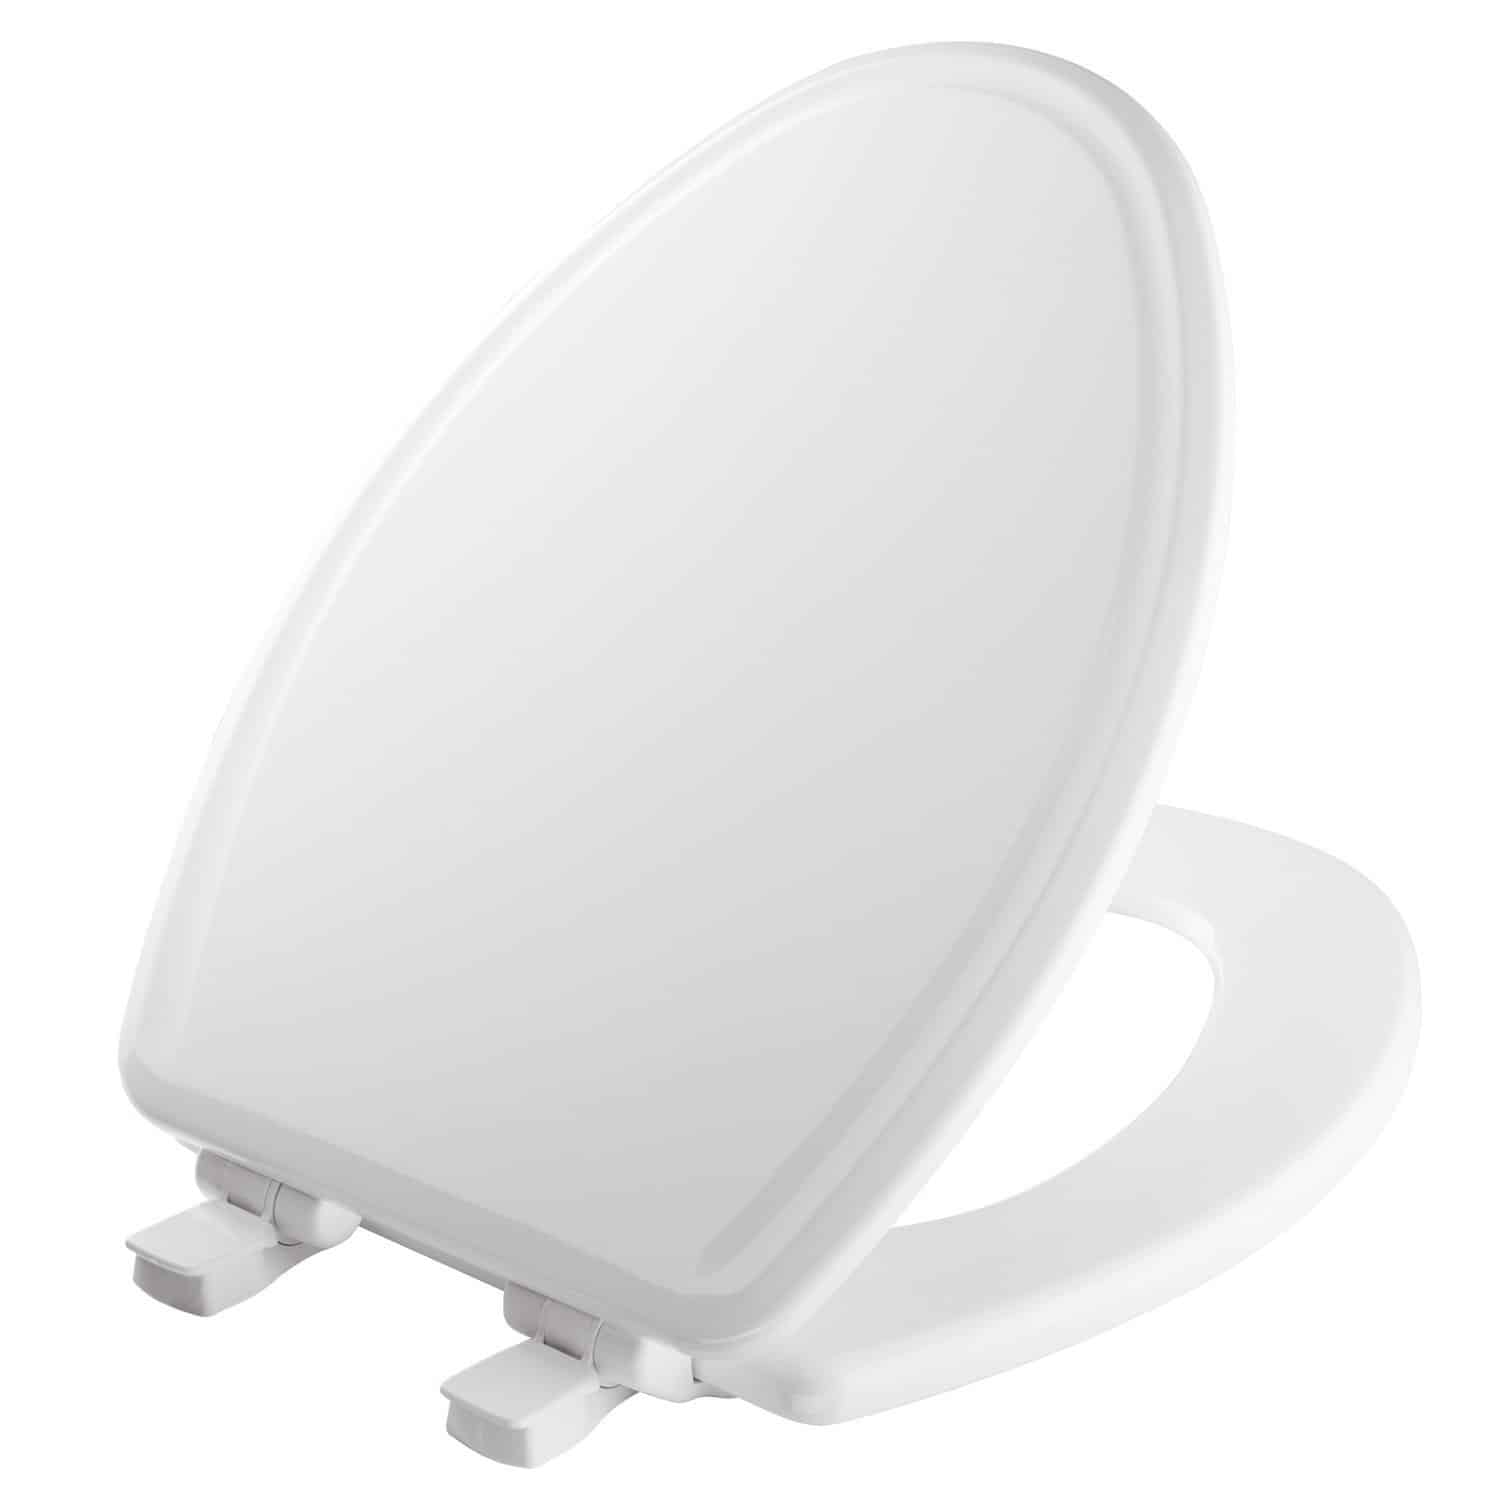 Amazing Best Toilet Seat Reviews Ratings Buying Guide Pdpeps Interior Chair Design Pdpepsorg